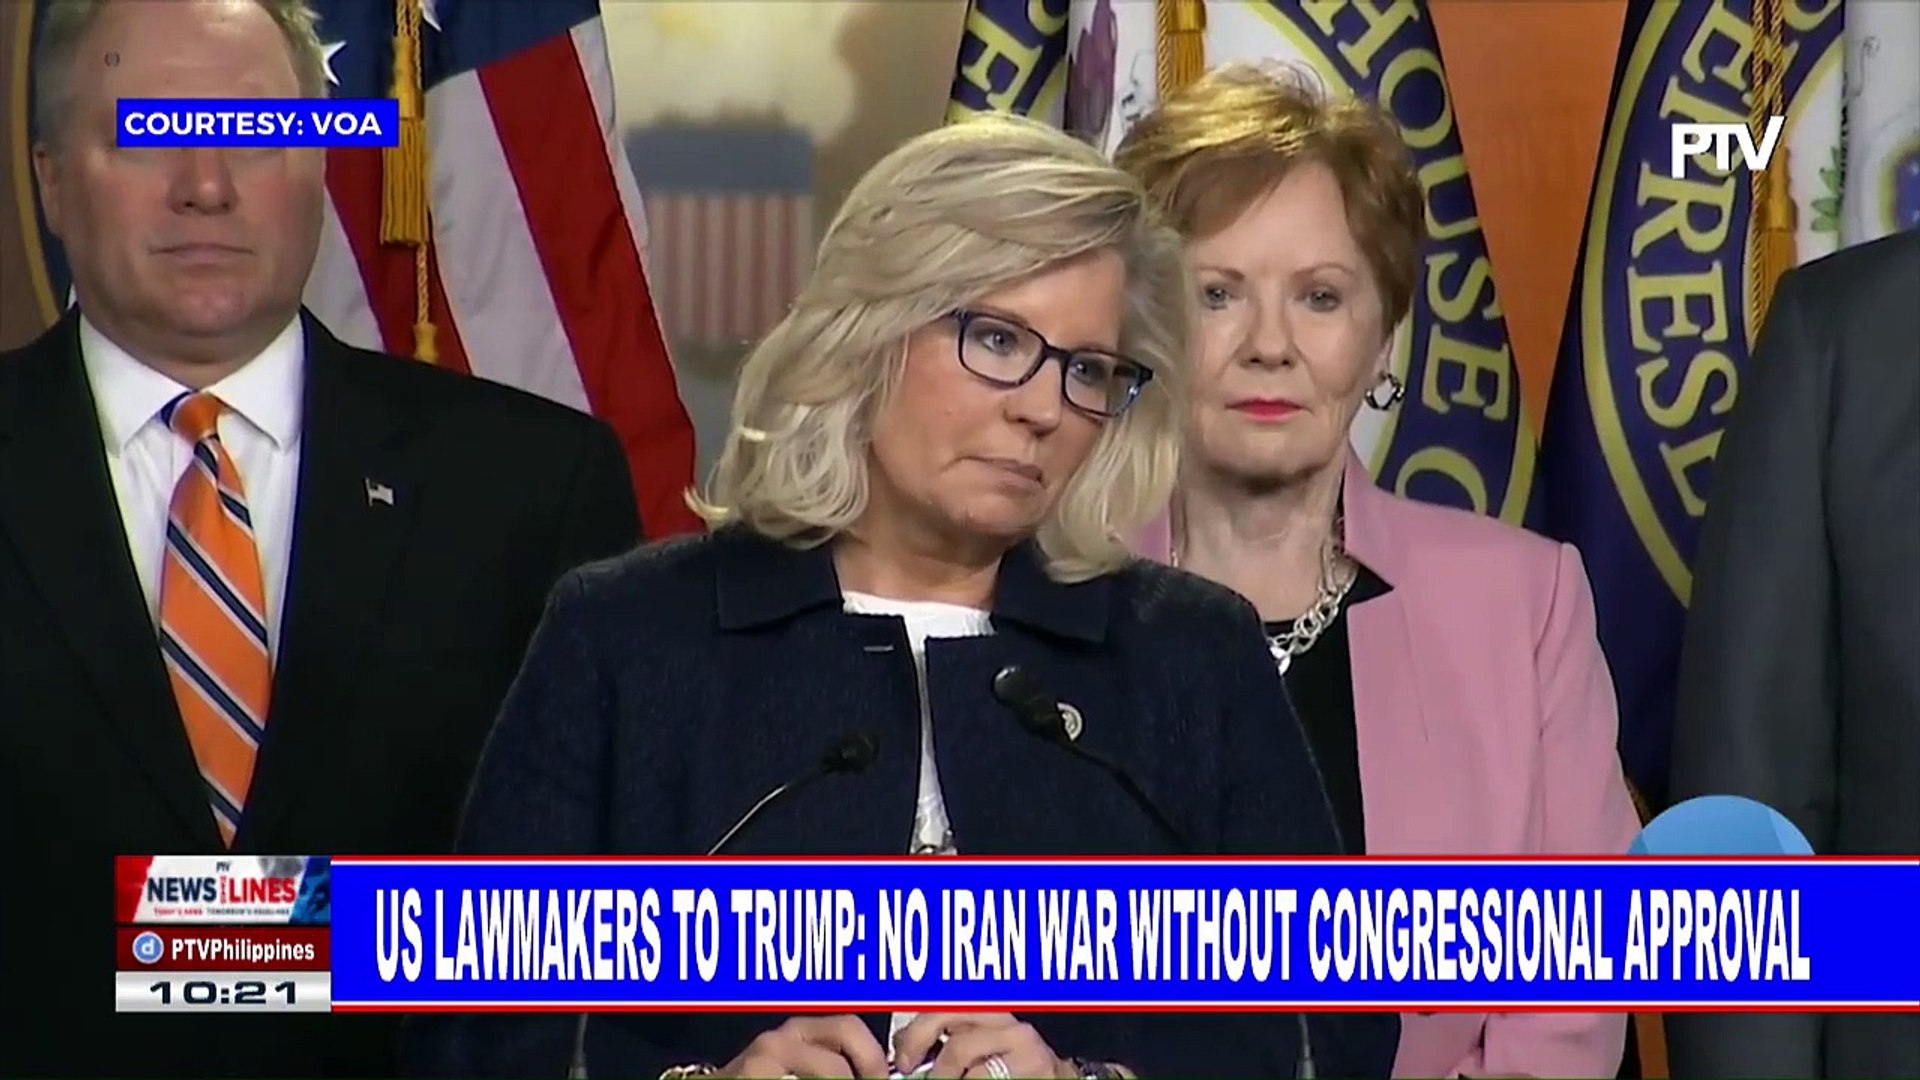 GLOBAL NEWS   US lawmakers to Trump: No Iran war without Congressional approval